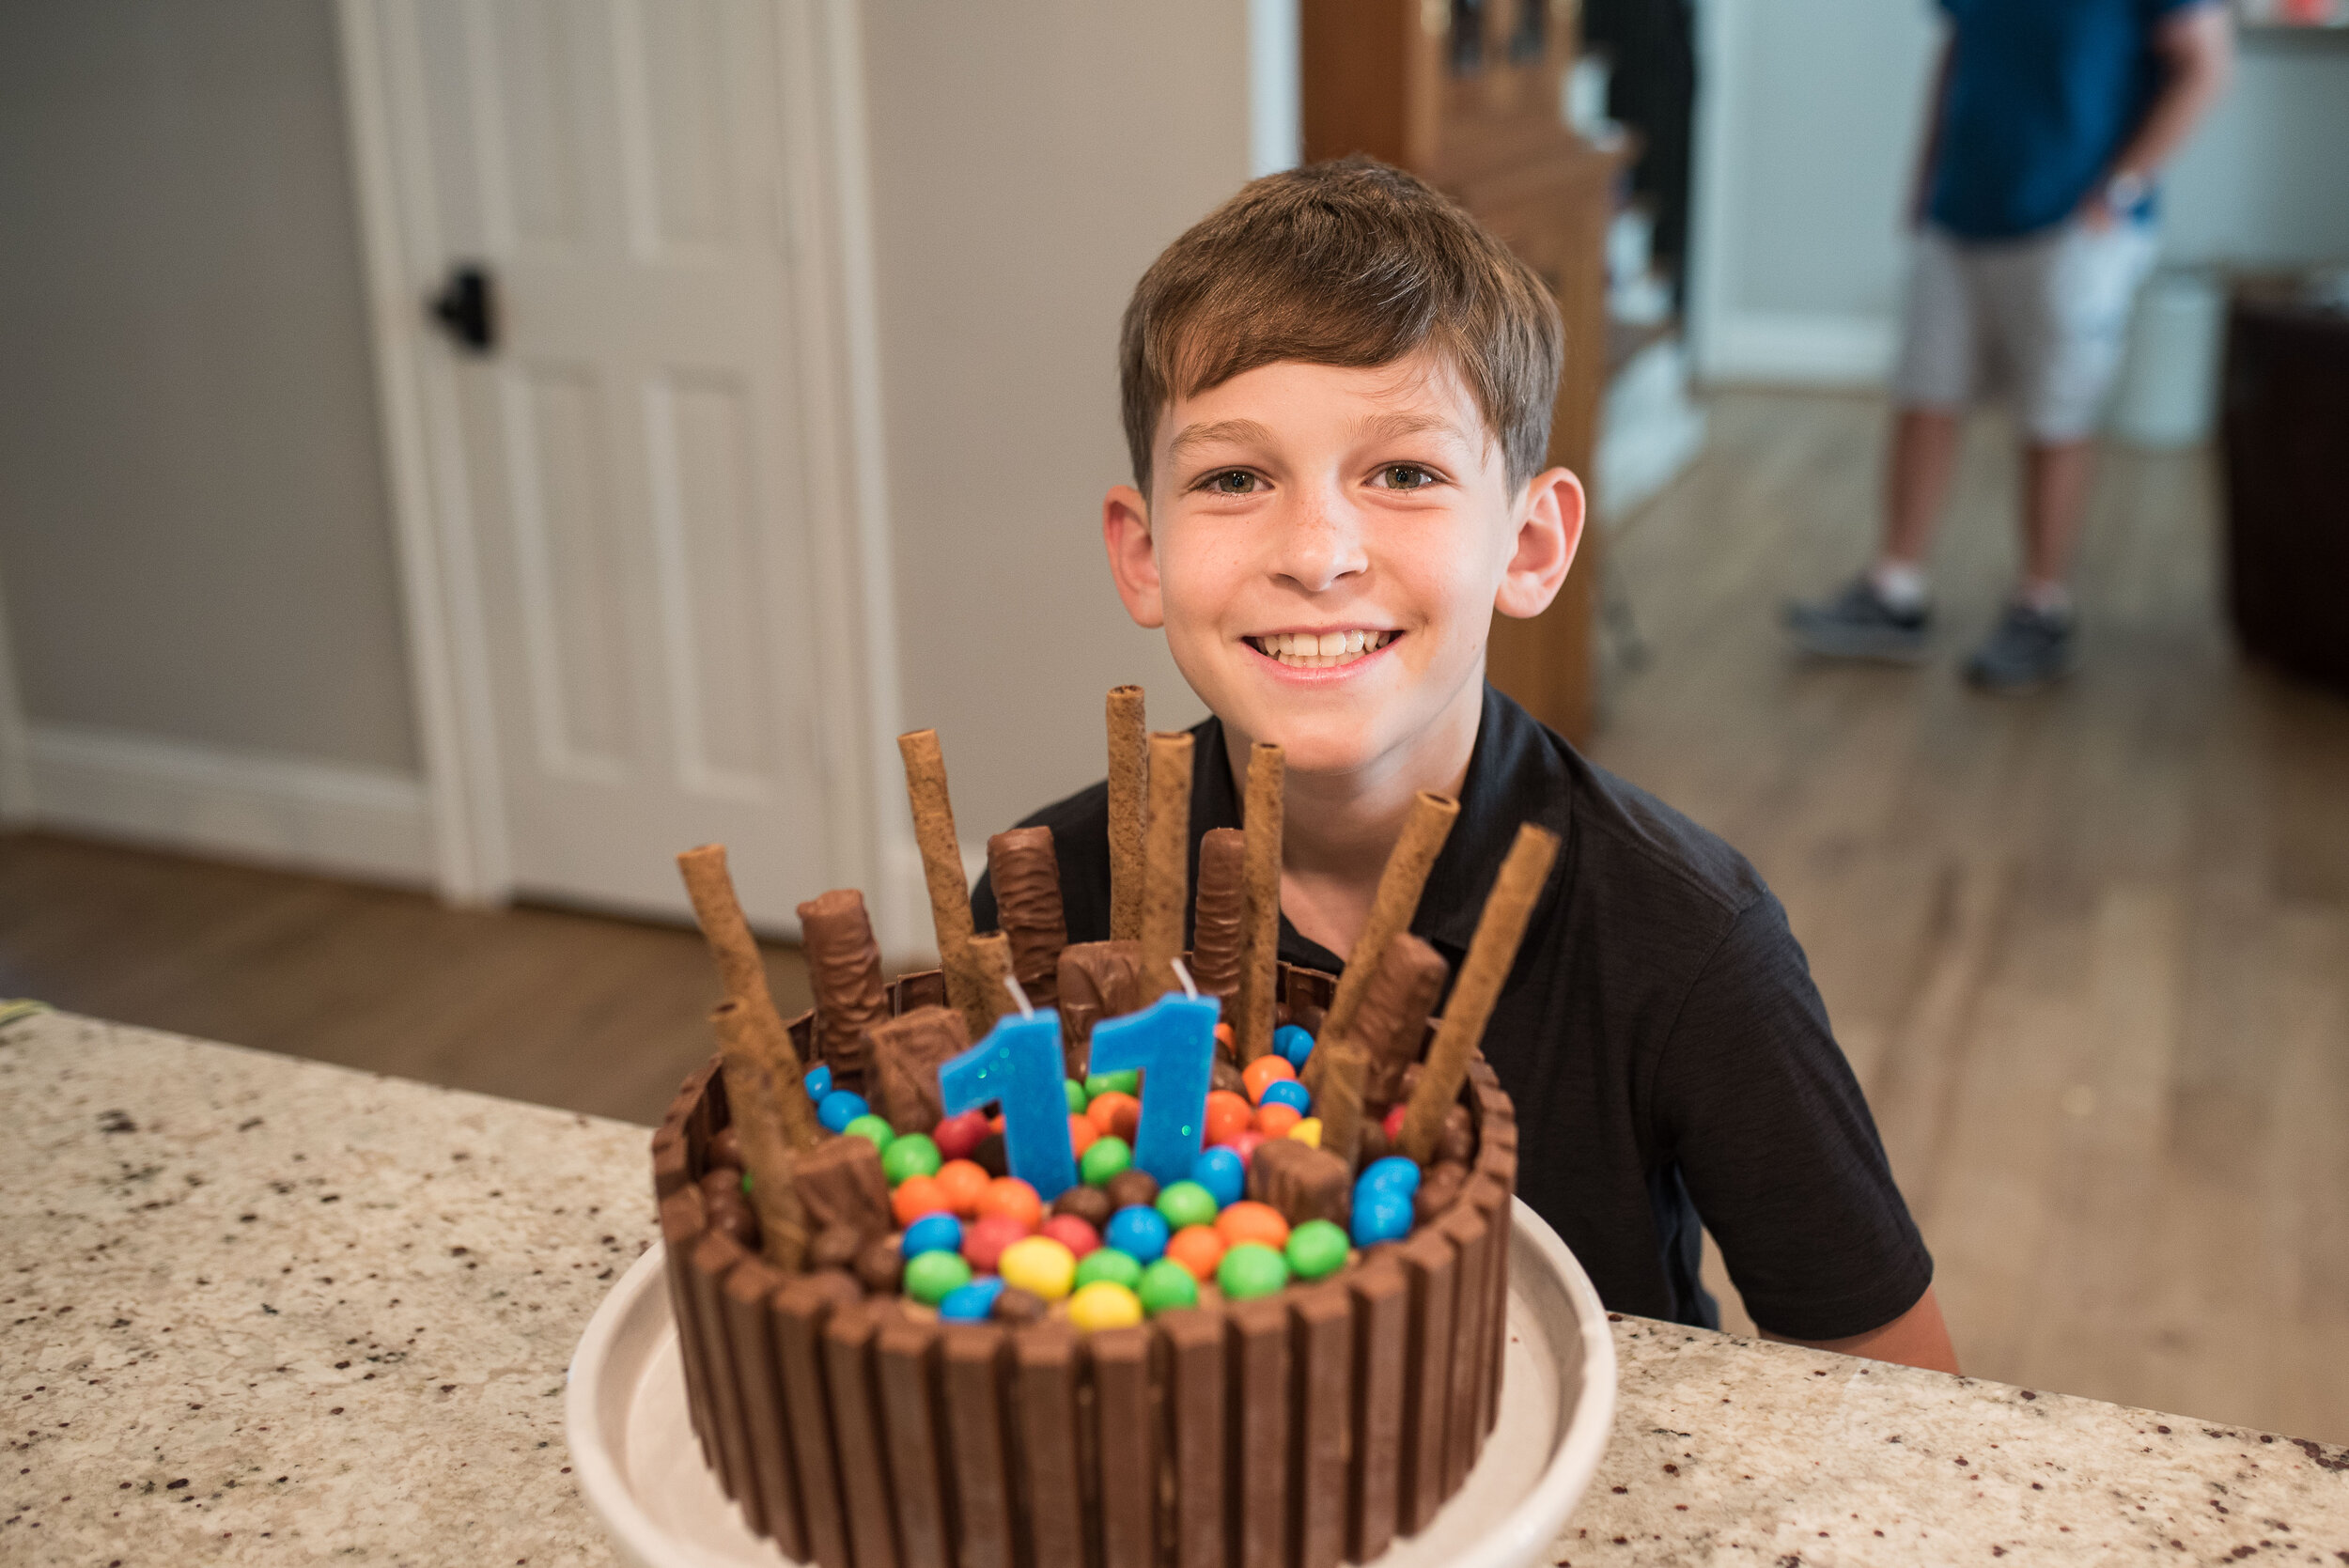 It's Year 3 for the Candy Cake.